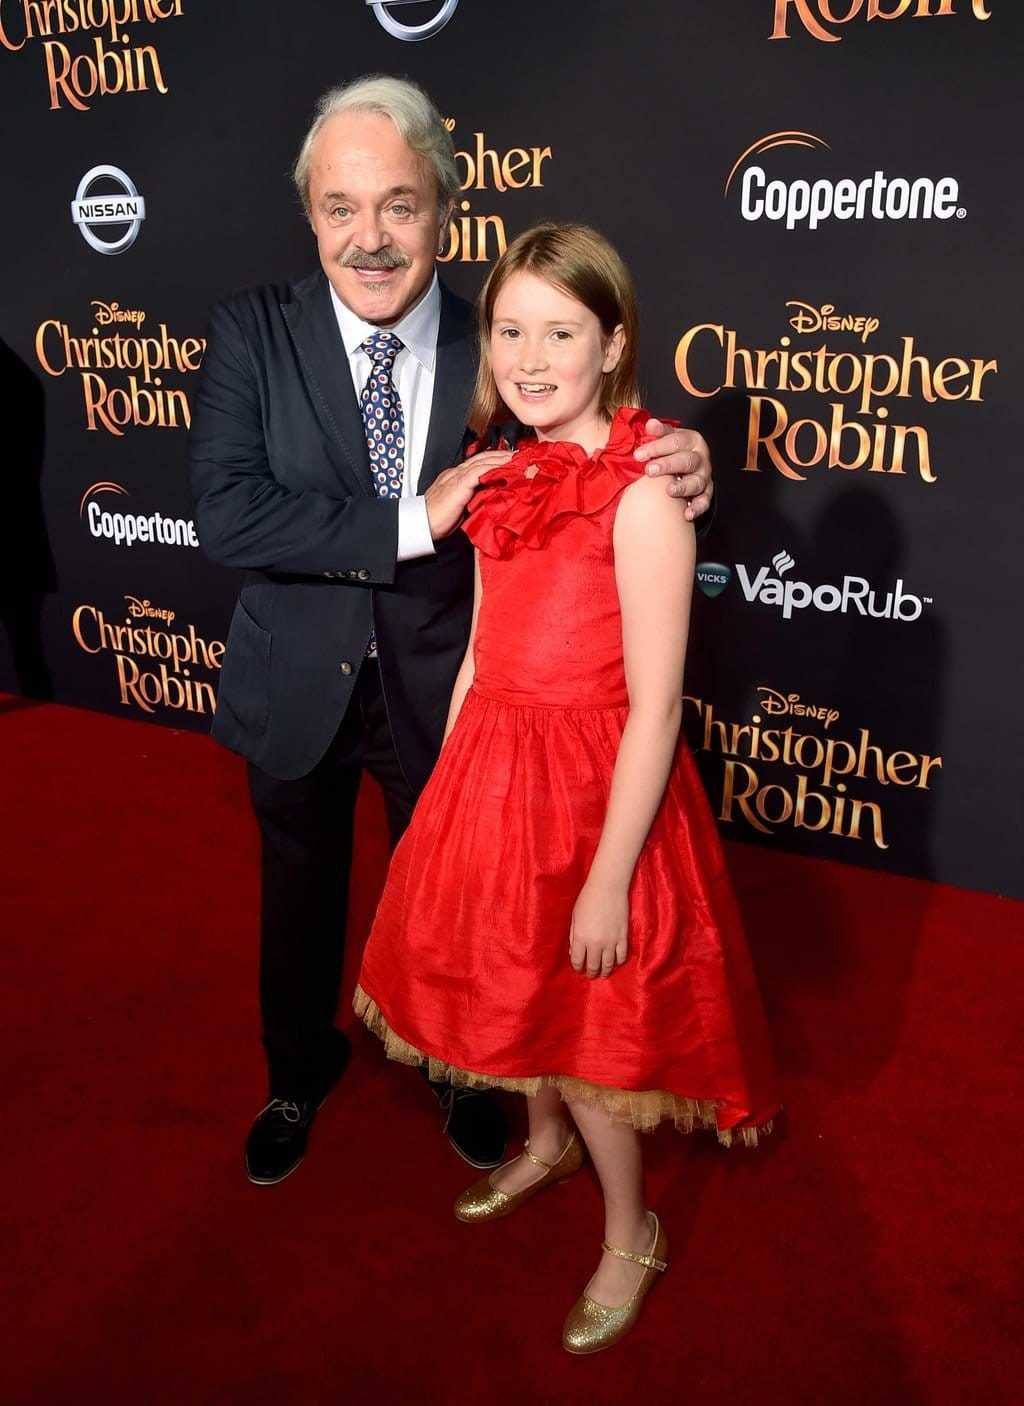 Bronte Carmichael and Jim Cummings at Disney's Red Carpet for Christopher Robin